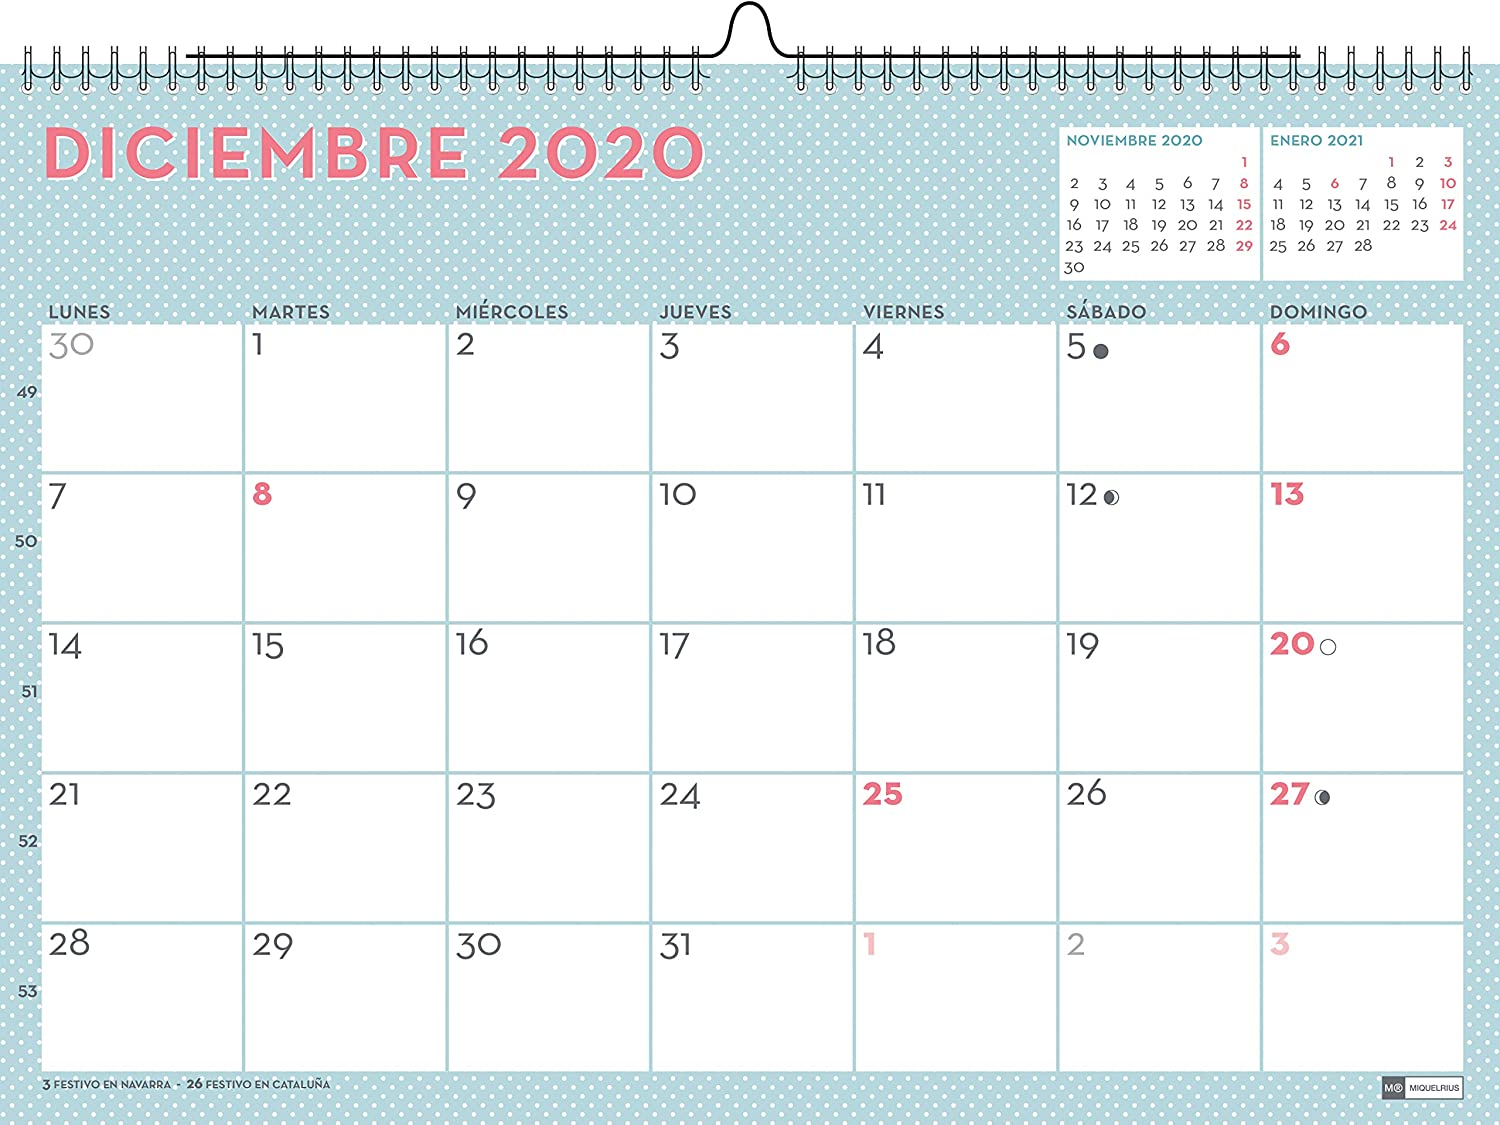 Miquelrius 28051 - Calendario de Pared A3 Lovely DIY 2020 Castellano